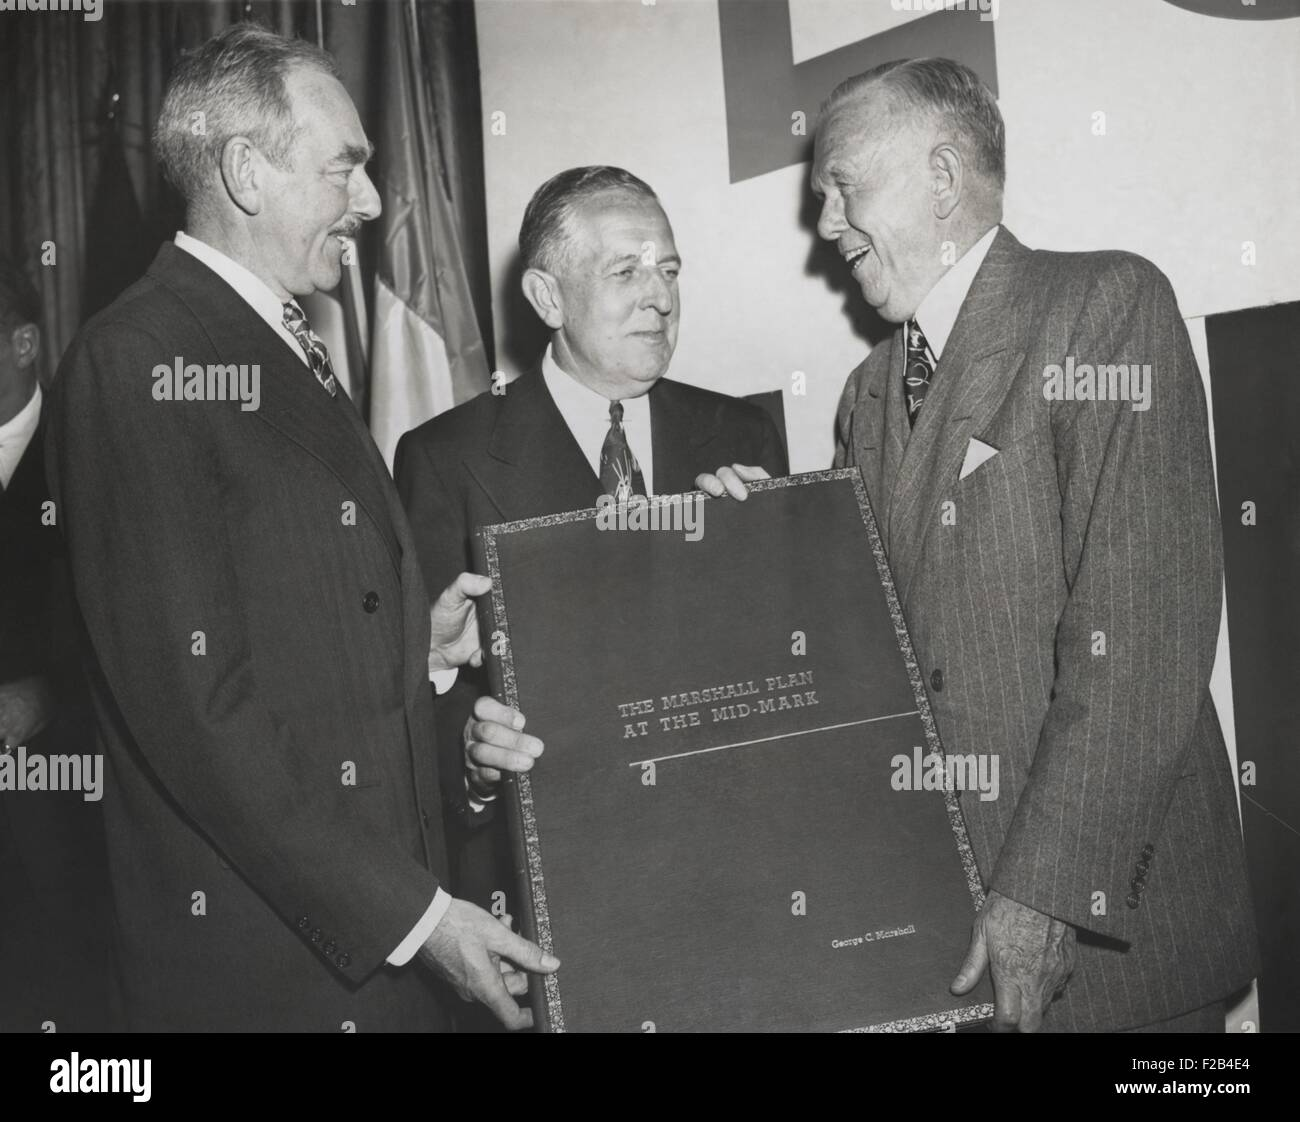 Celebration of the 2nd Anniversary of the Marshall Plan. Secretary of State Dean Acheson (left) and Economic Cooperation - Stock Image